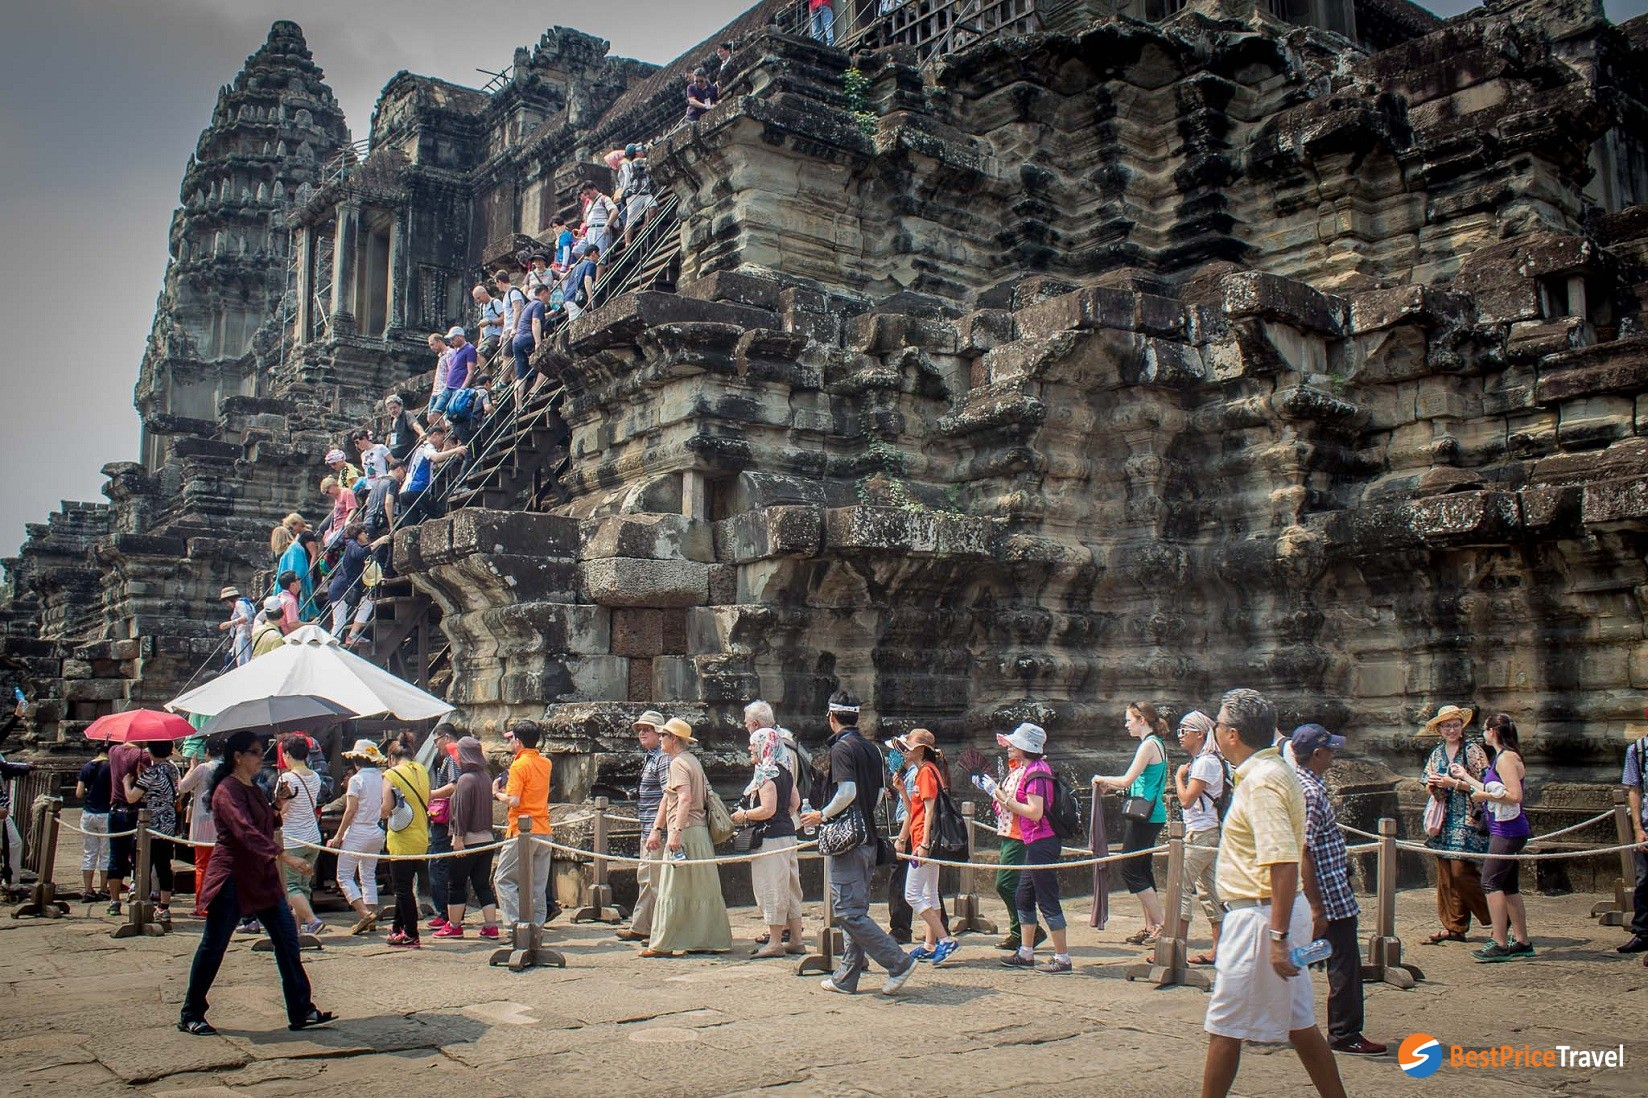 the largest religious temple in the world, Angkor Wat